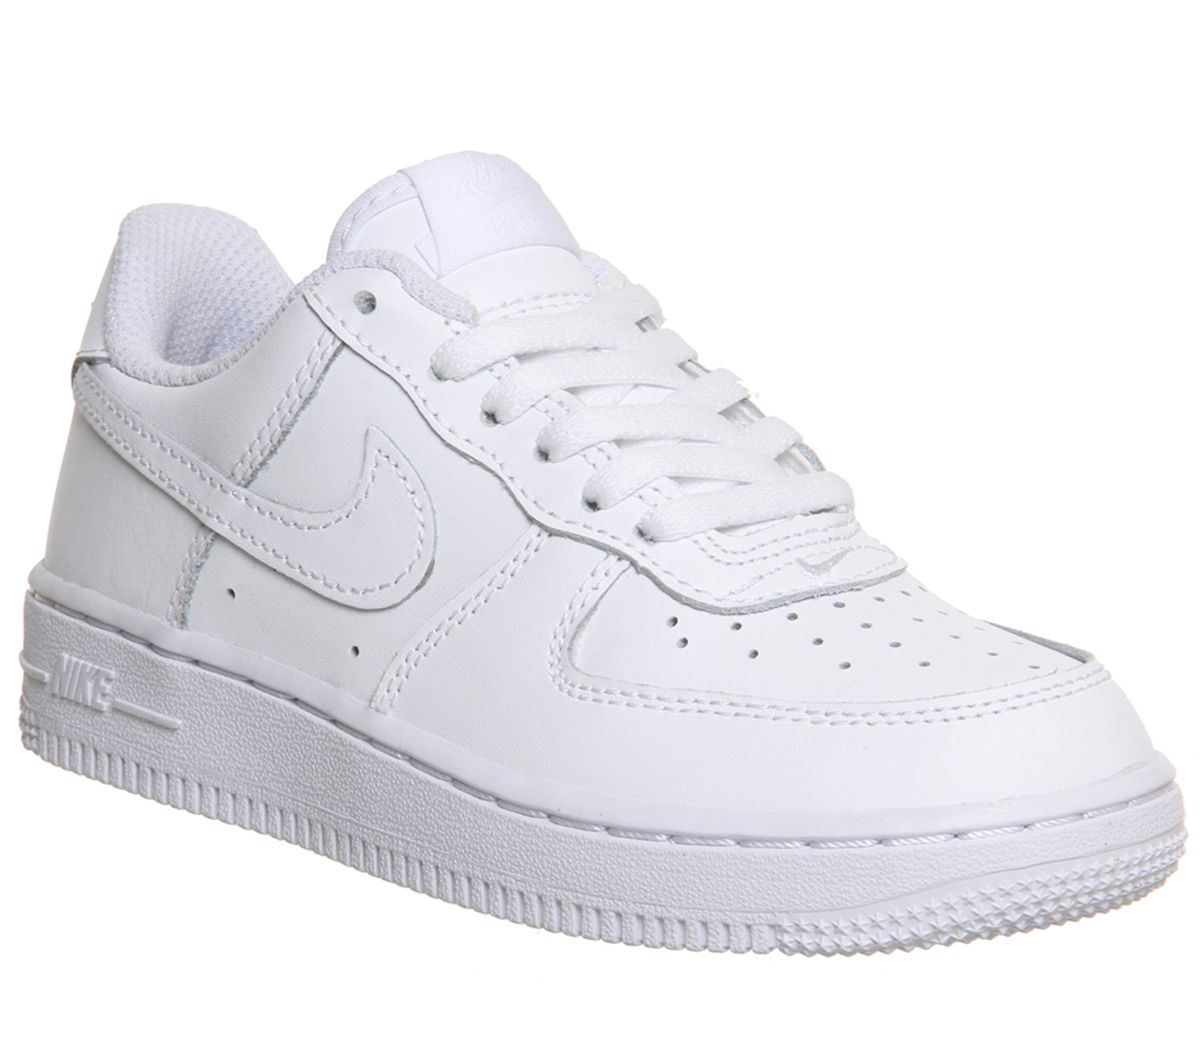 0984df8989a Nike Air Force 1 Youth White - Unisex